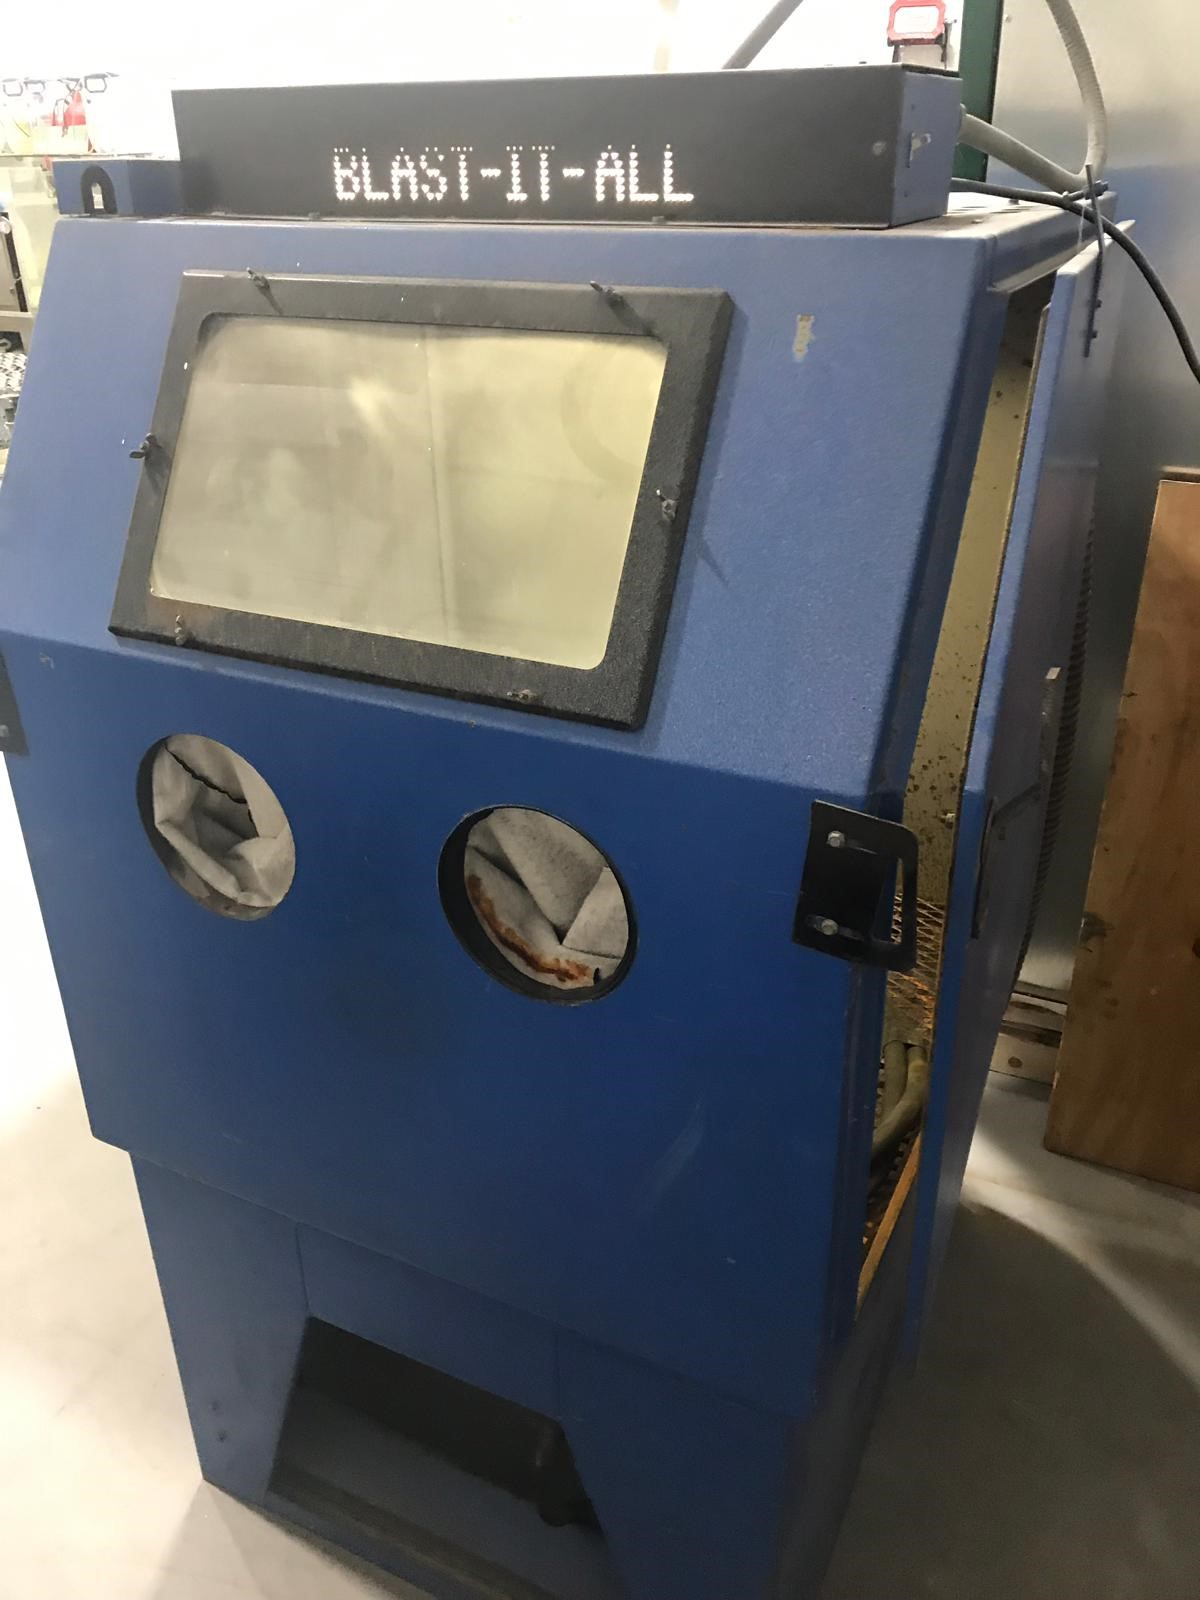 "Lot 4 - BLAST-IT-ALL Sandblasting Unit - 38"" x 36"" x 70""H"